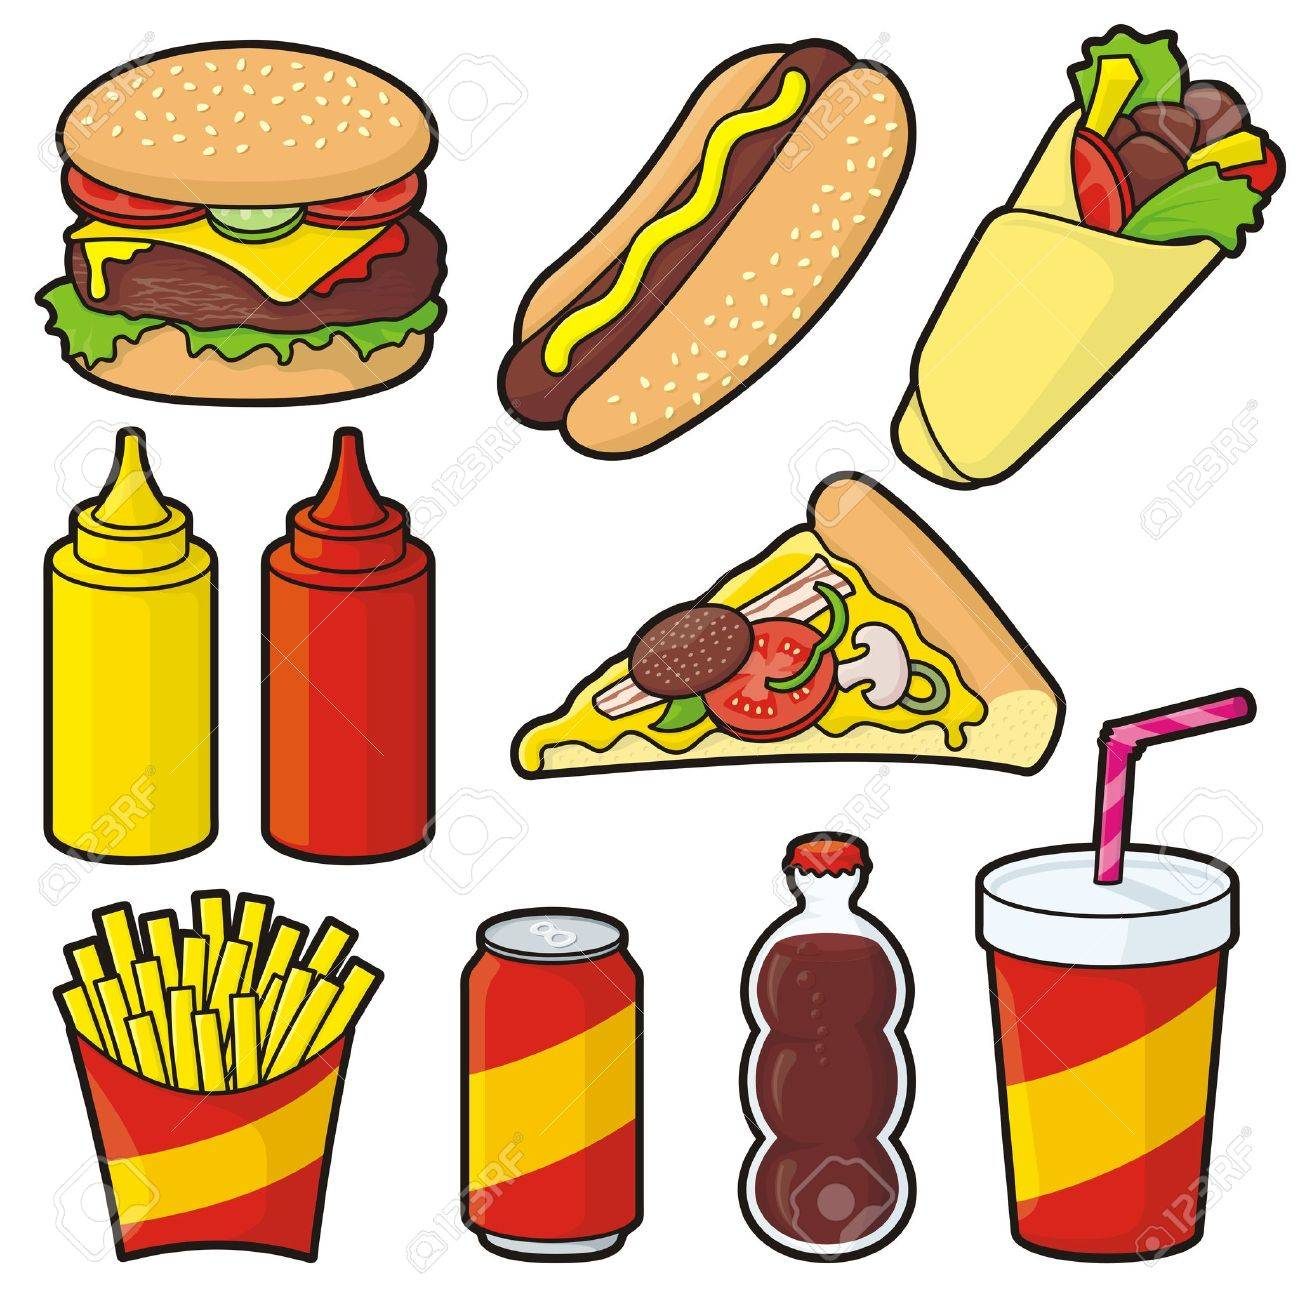 Fast food icons isolated on white - 21889877